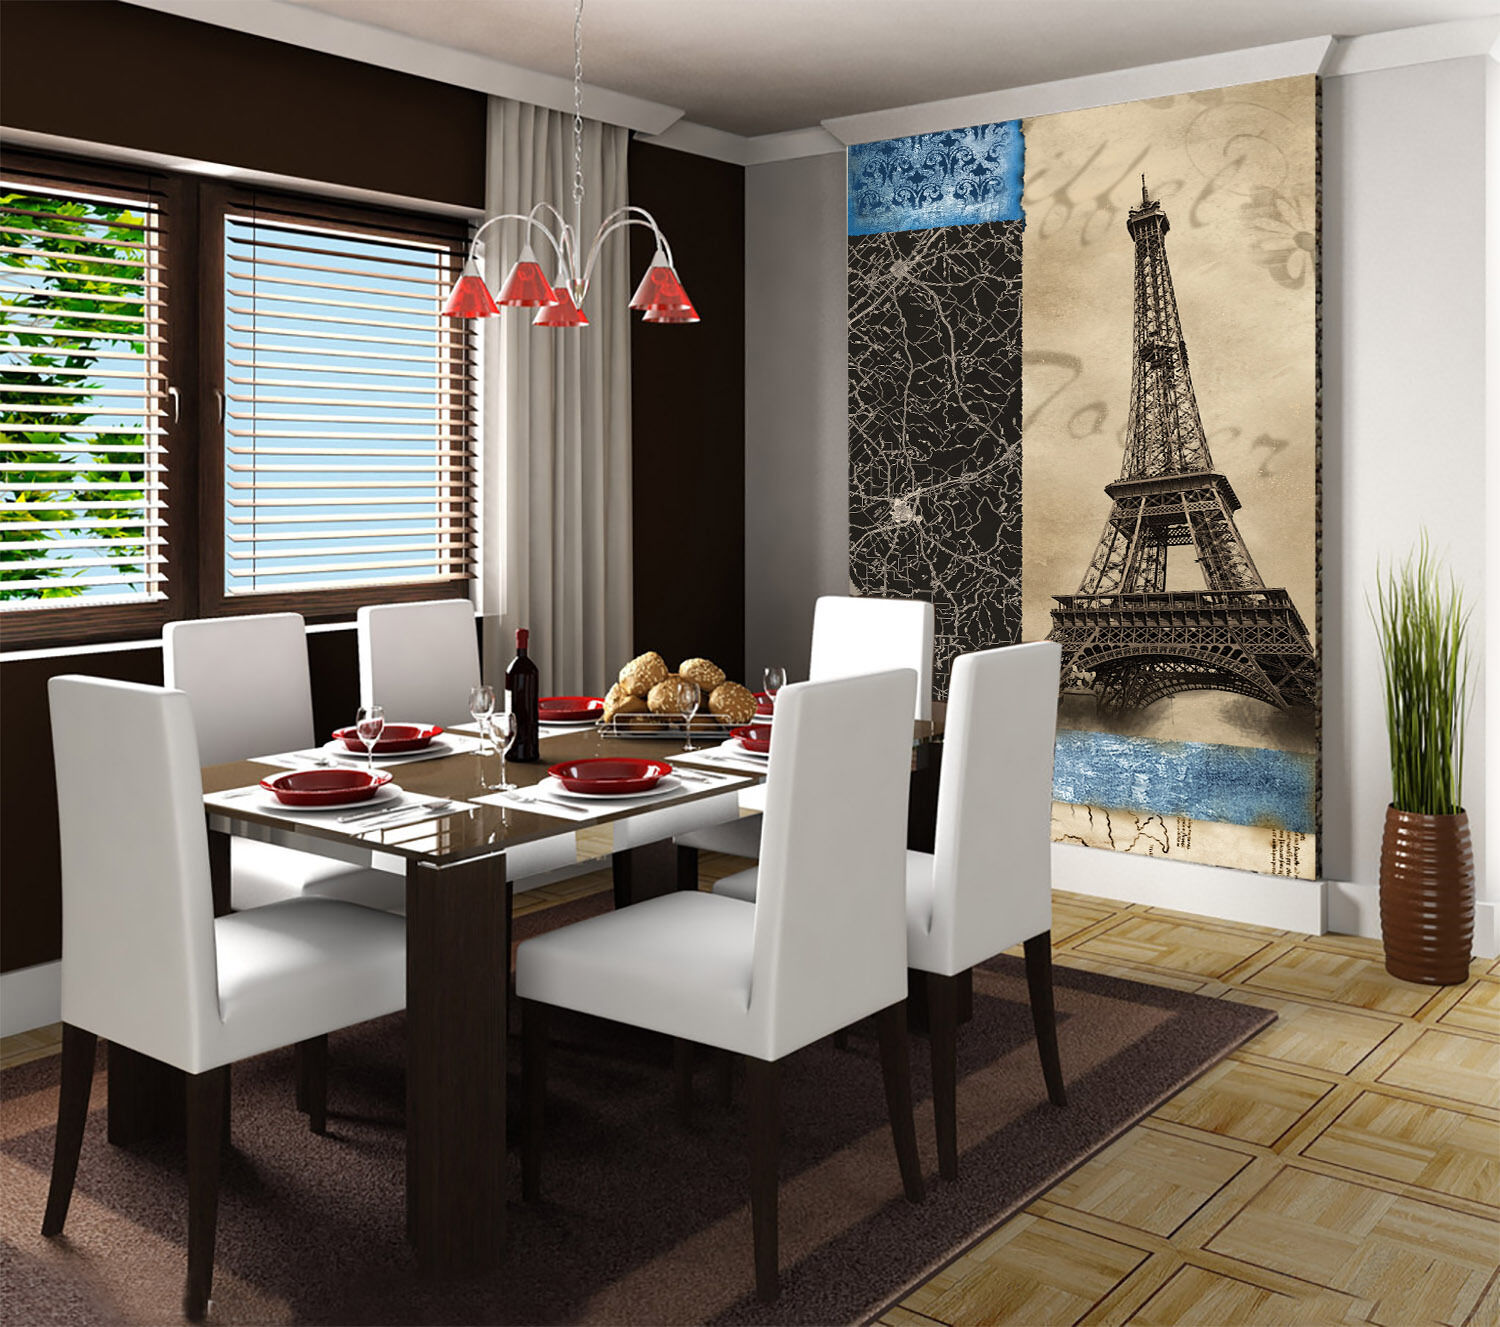 3D Eiffel Tower 91 Photo Papier Peint en Autocollant Murale Plafond Chambre Art